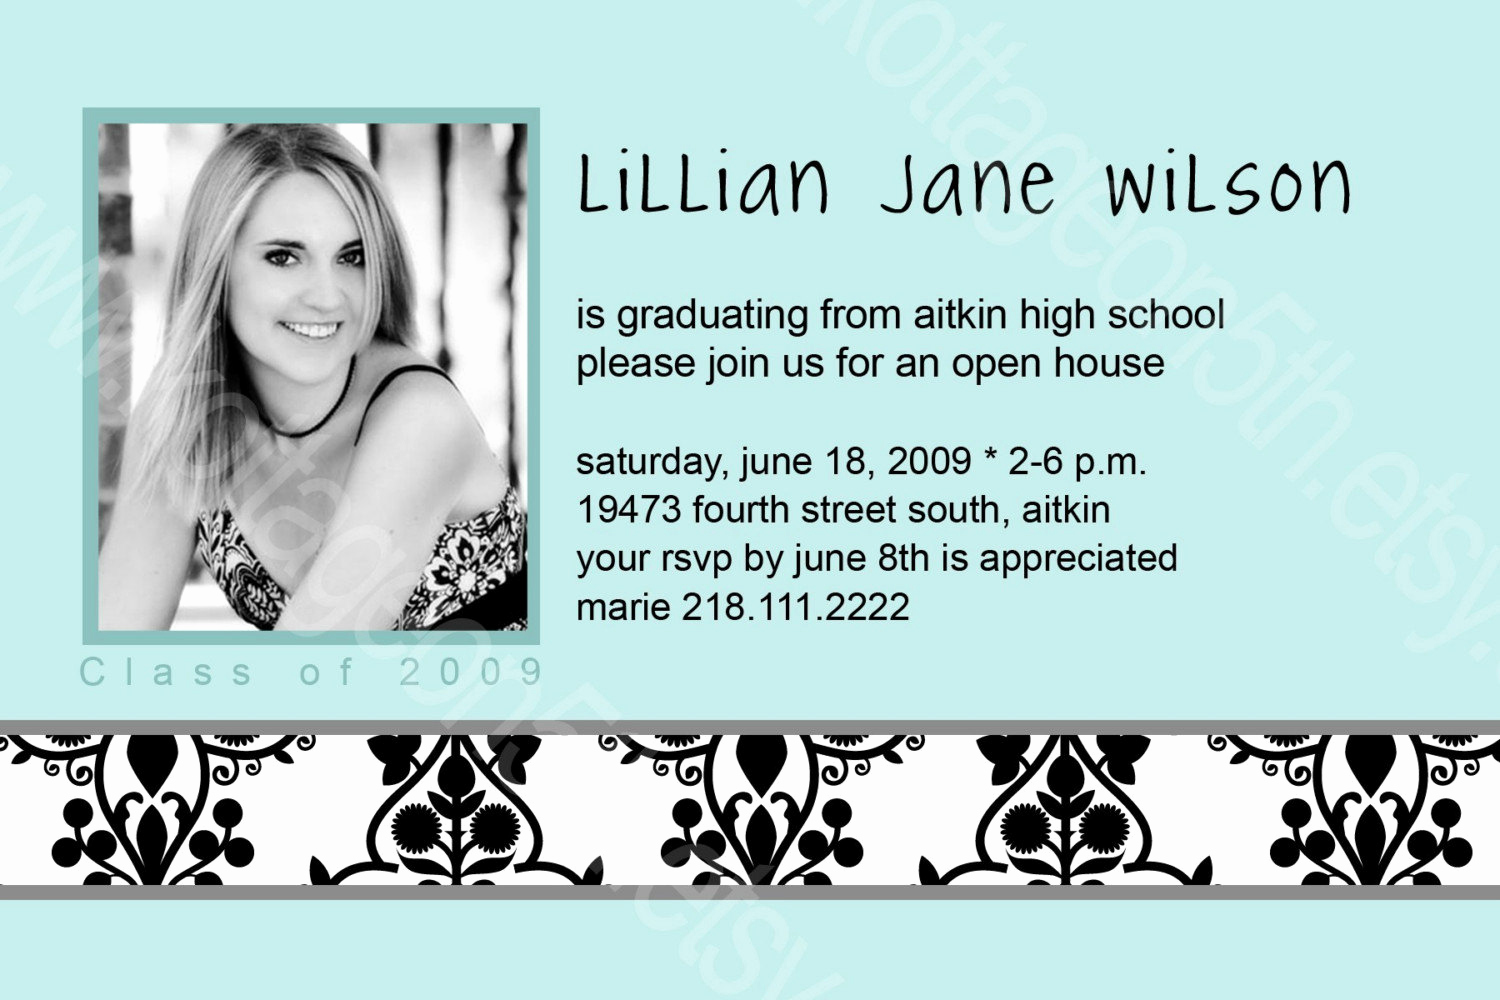 Graduation Open House Invitation Wording Elegant Items Similar to 2010 Graduation Announcement Open House